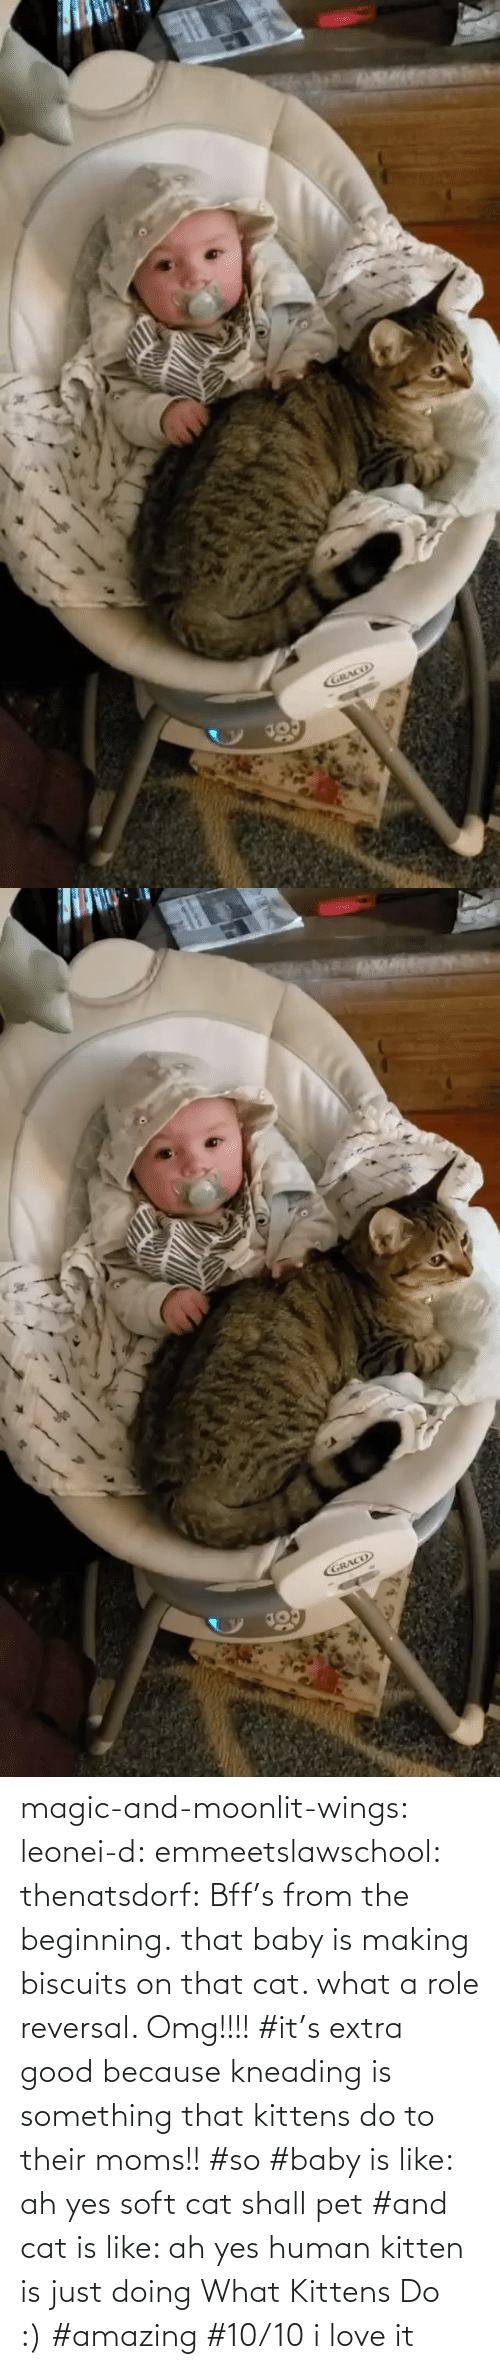 what a: magic-and-moonlit-wings: leonei-d:  emmeetslawschool:  thenatsdorf: Bff's from the beginning. that baby is making biscuits on that cat. what a role reversal.    Omg!!!!     #it's extra good because kneading is something that kittens do to their moms!! #so #baby is like: ah yes soft cat shall pet #and cat is like: ah yes human kitten is just doing What Kittens Do :) #amazing #10/10 i love it